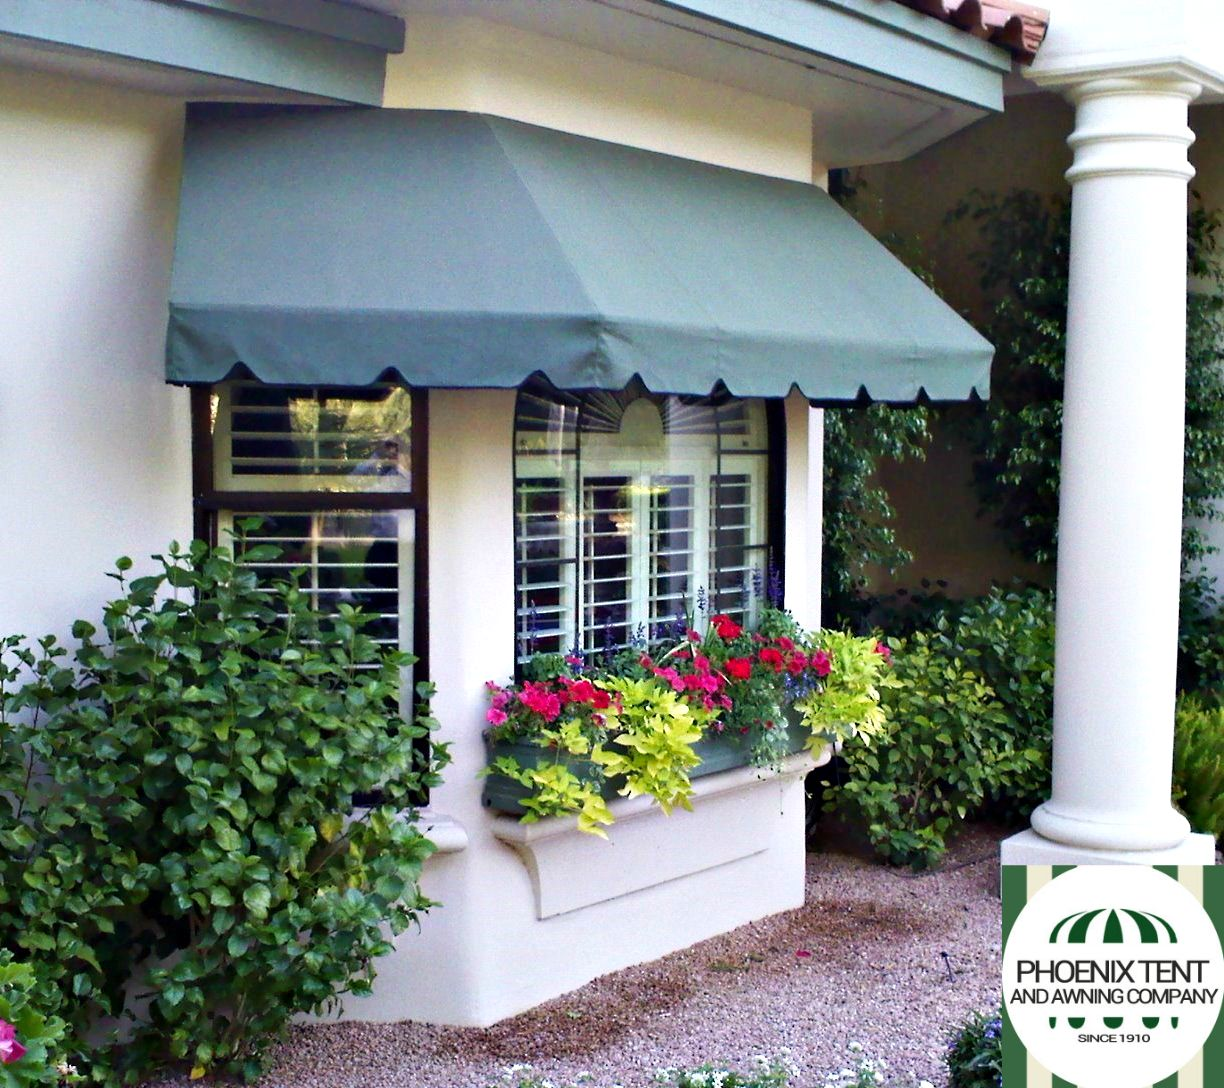 Phoenix Tent And Awning Company 2829 E McDowell Road AZ Awnings Canopies